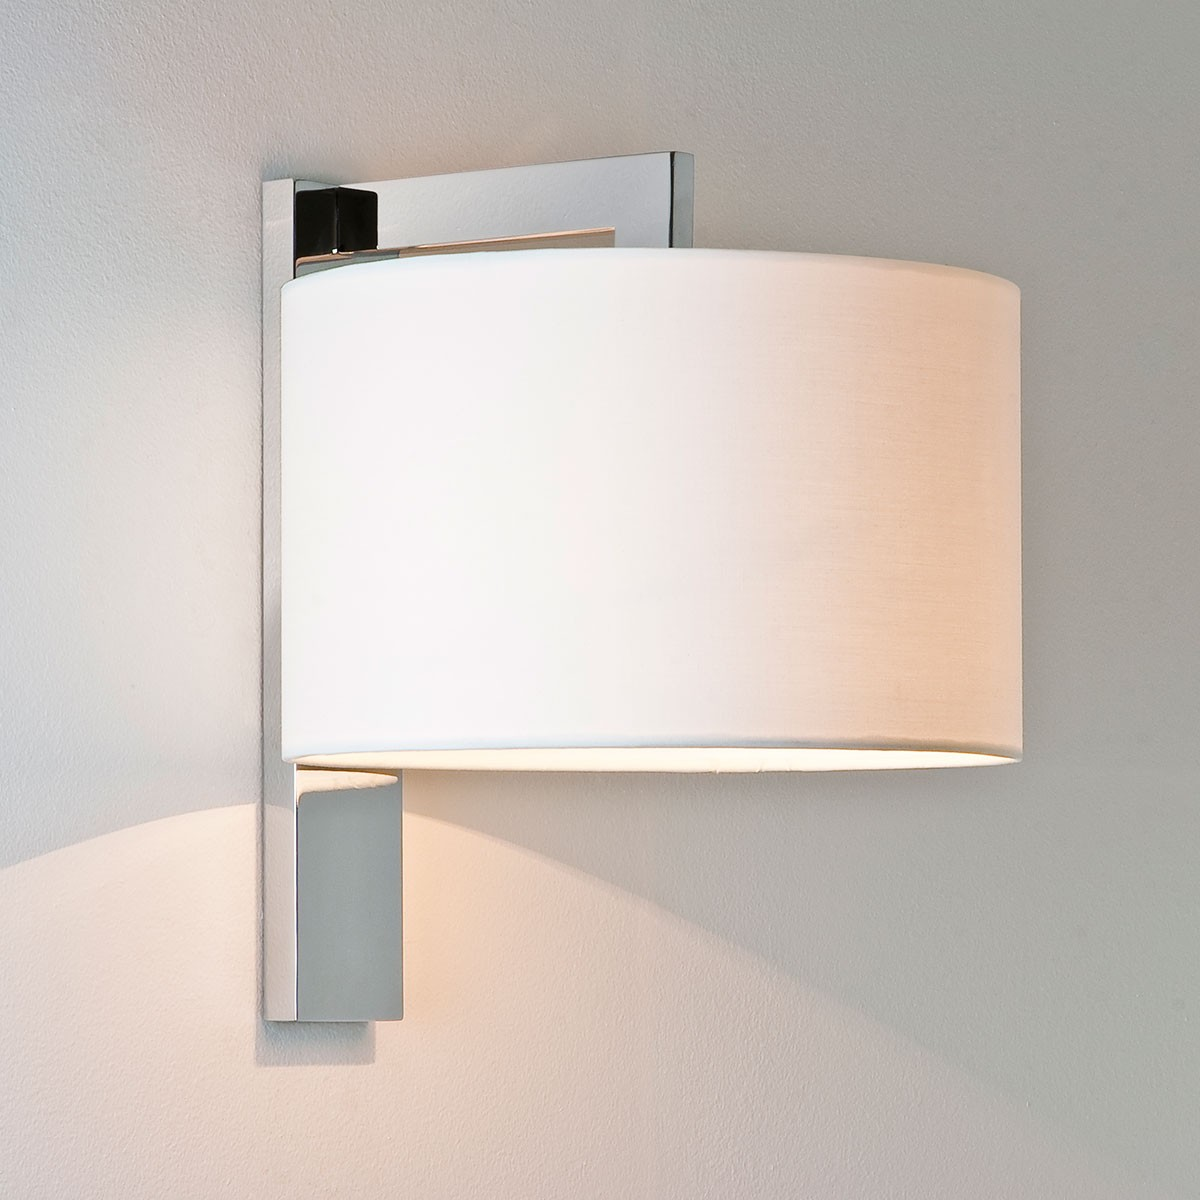 Chrome Internal Wall Lights : Astro Ravello Polished Chrome Wall Light at UK Electrical Supplies.